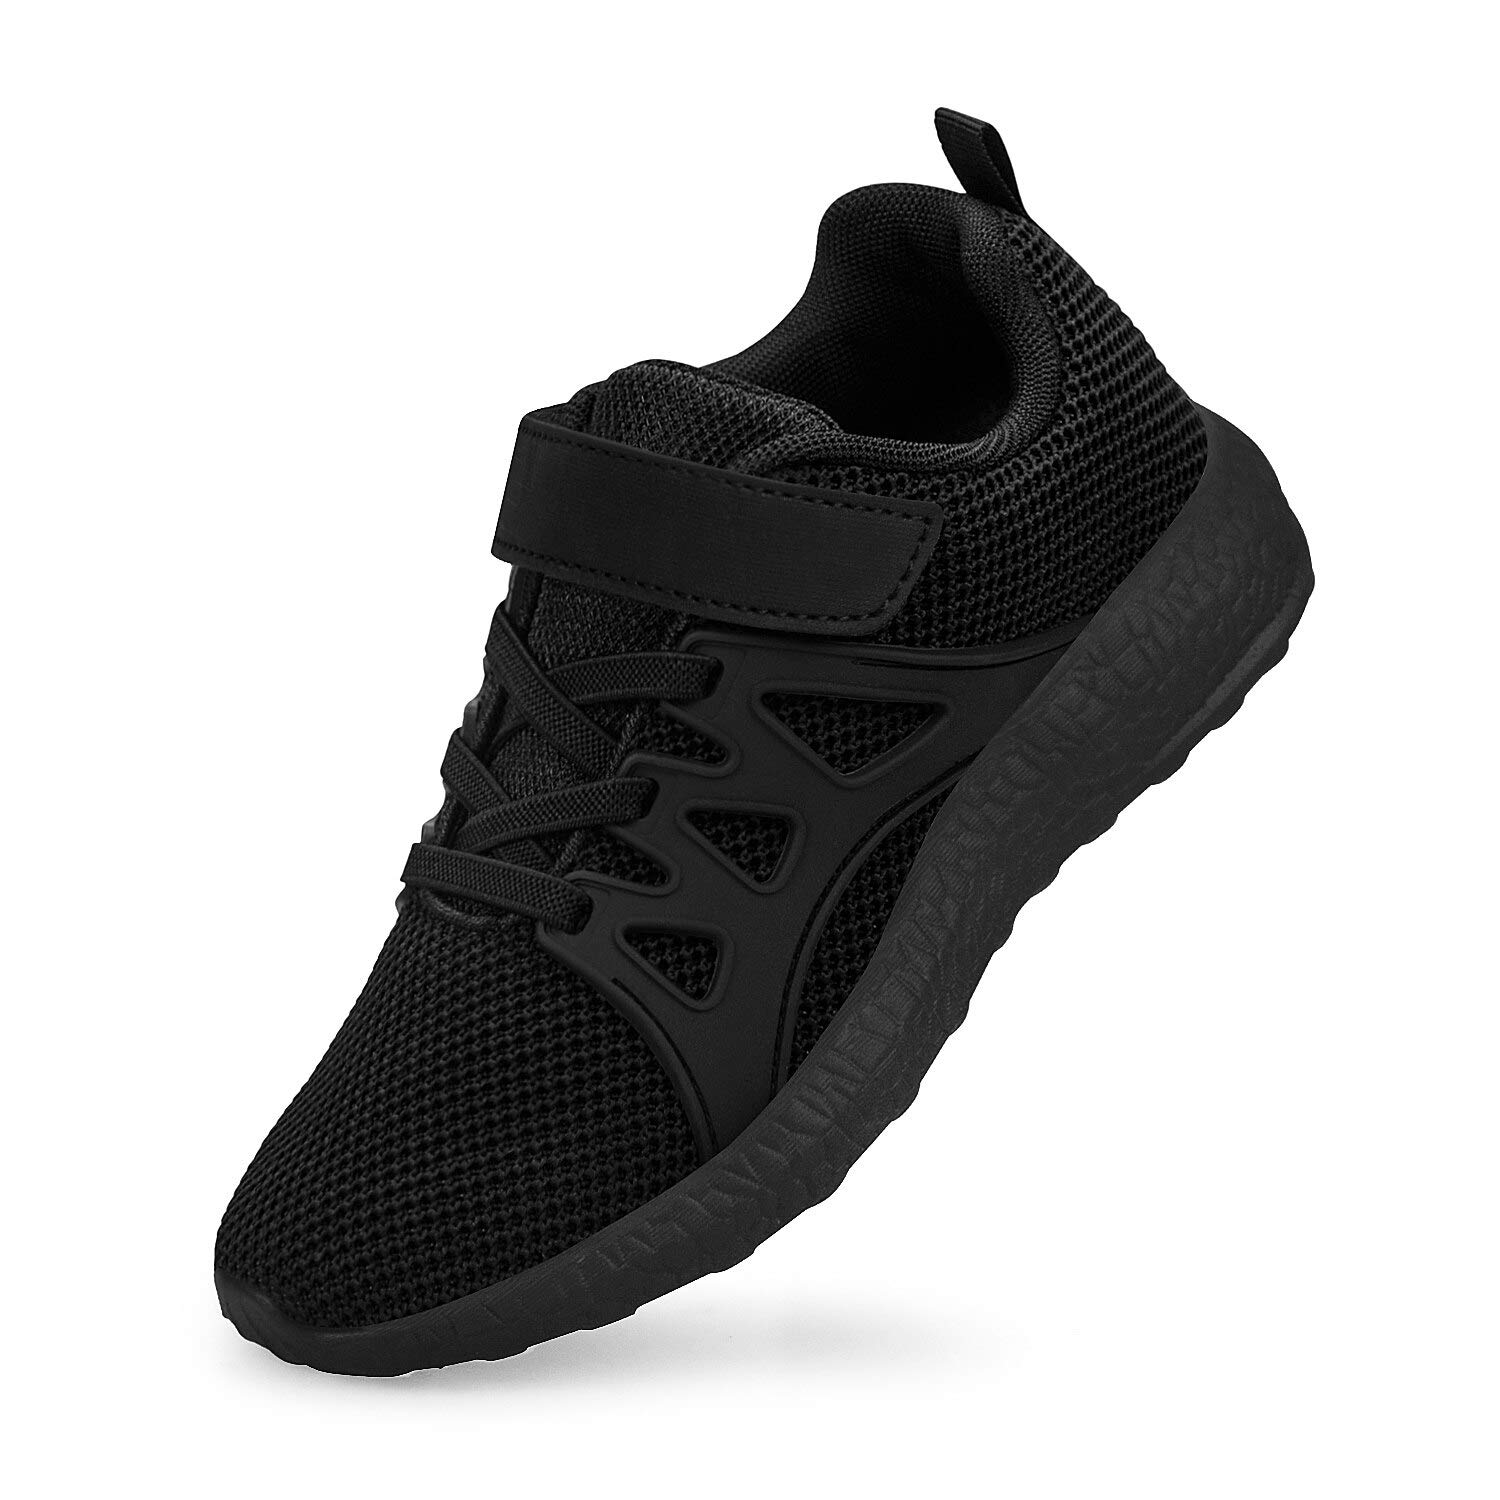 MARSVOVO Boys Sneakers Lightweight Breathable Mesh Ultra Athletic Walking Road Running Shoe Black by MARSVOVO